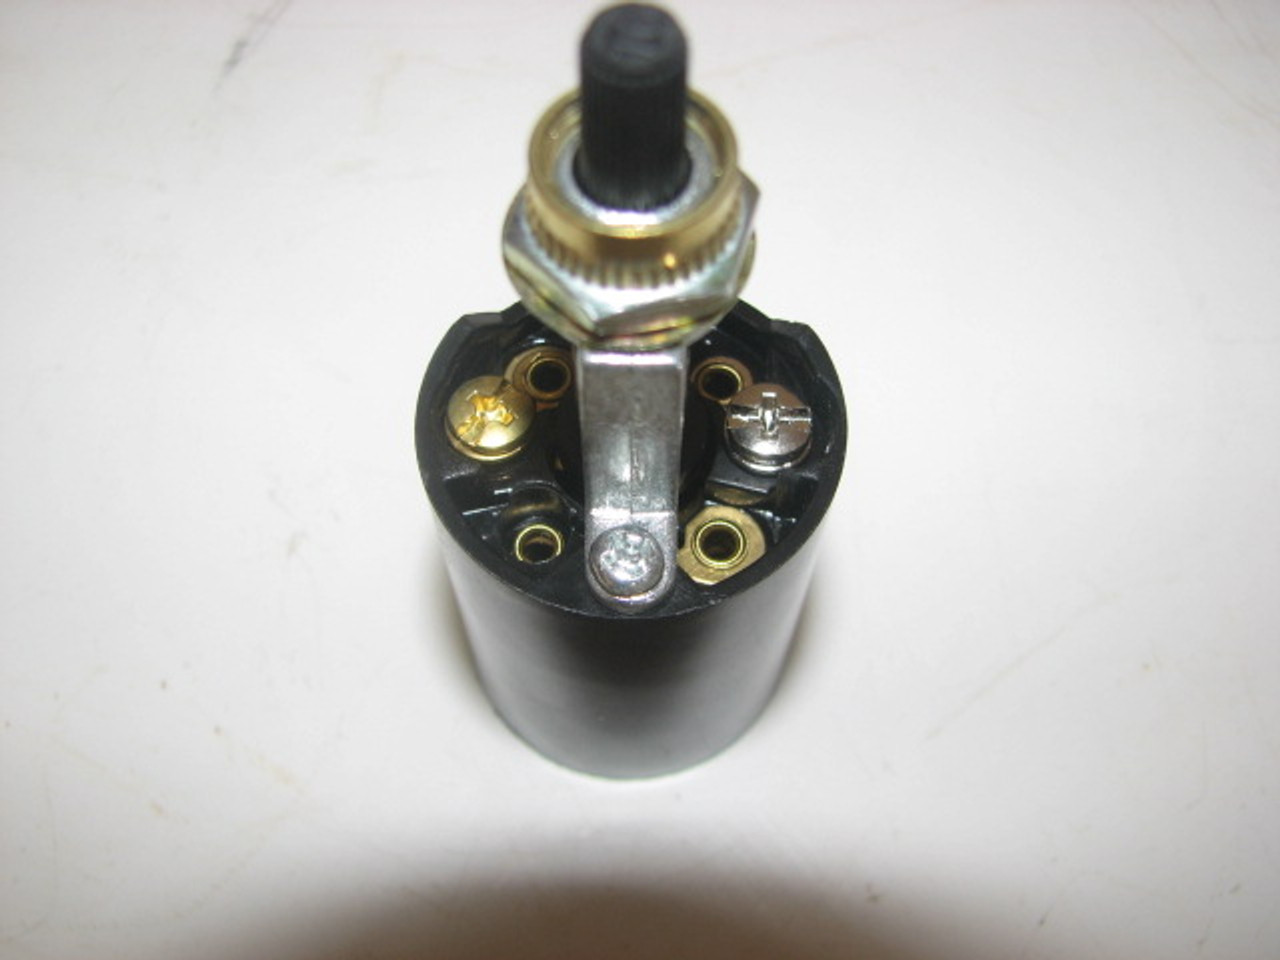 Bakelite Socket with Bottom Switch (CLT065) BOTTOM VIEW